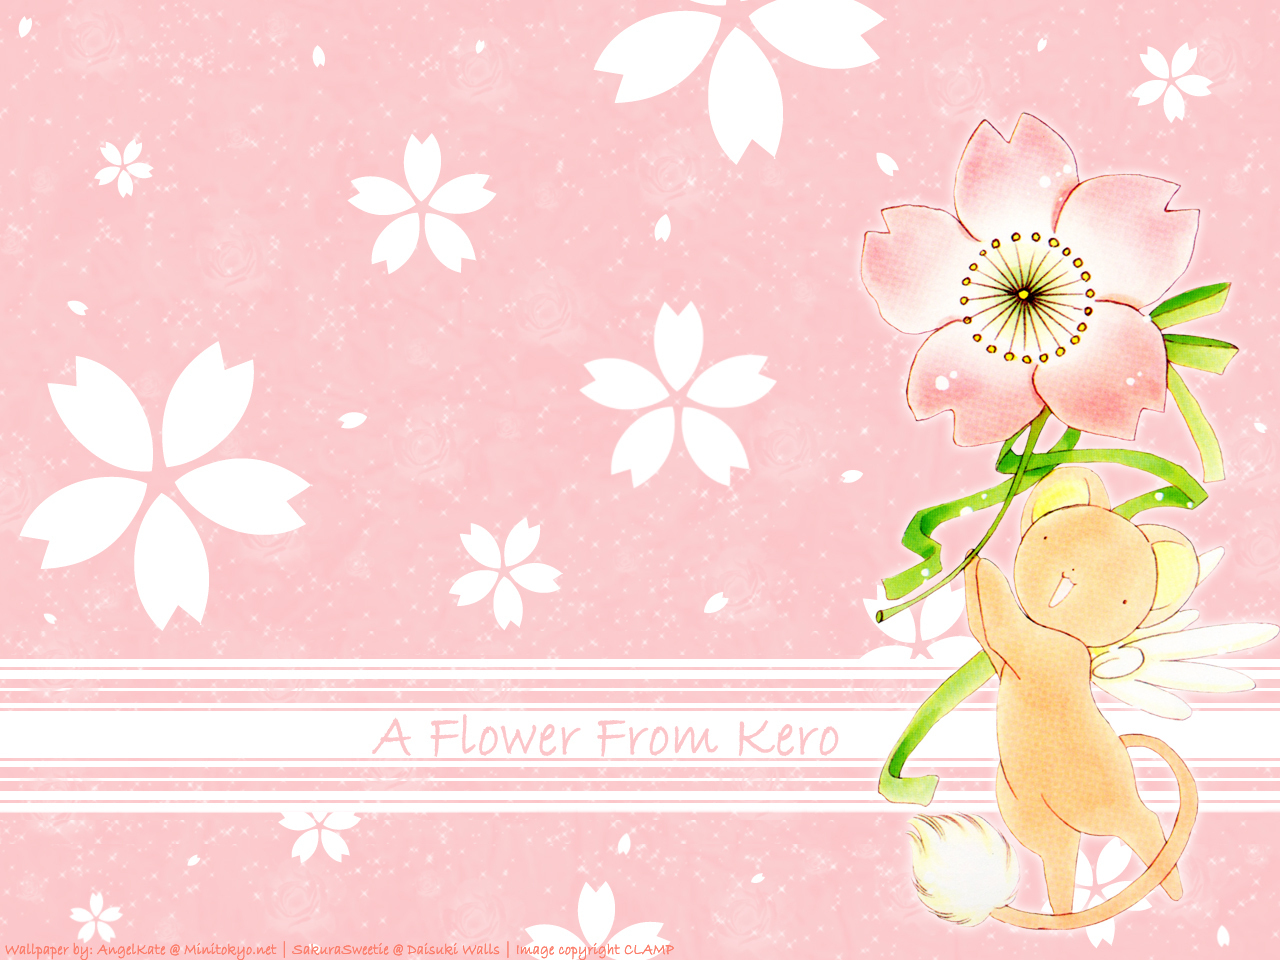 kero chan wallpaper - photo #40